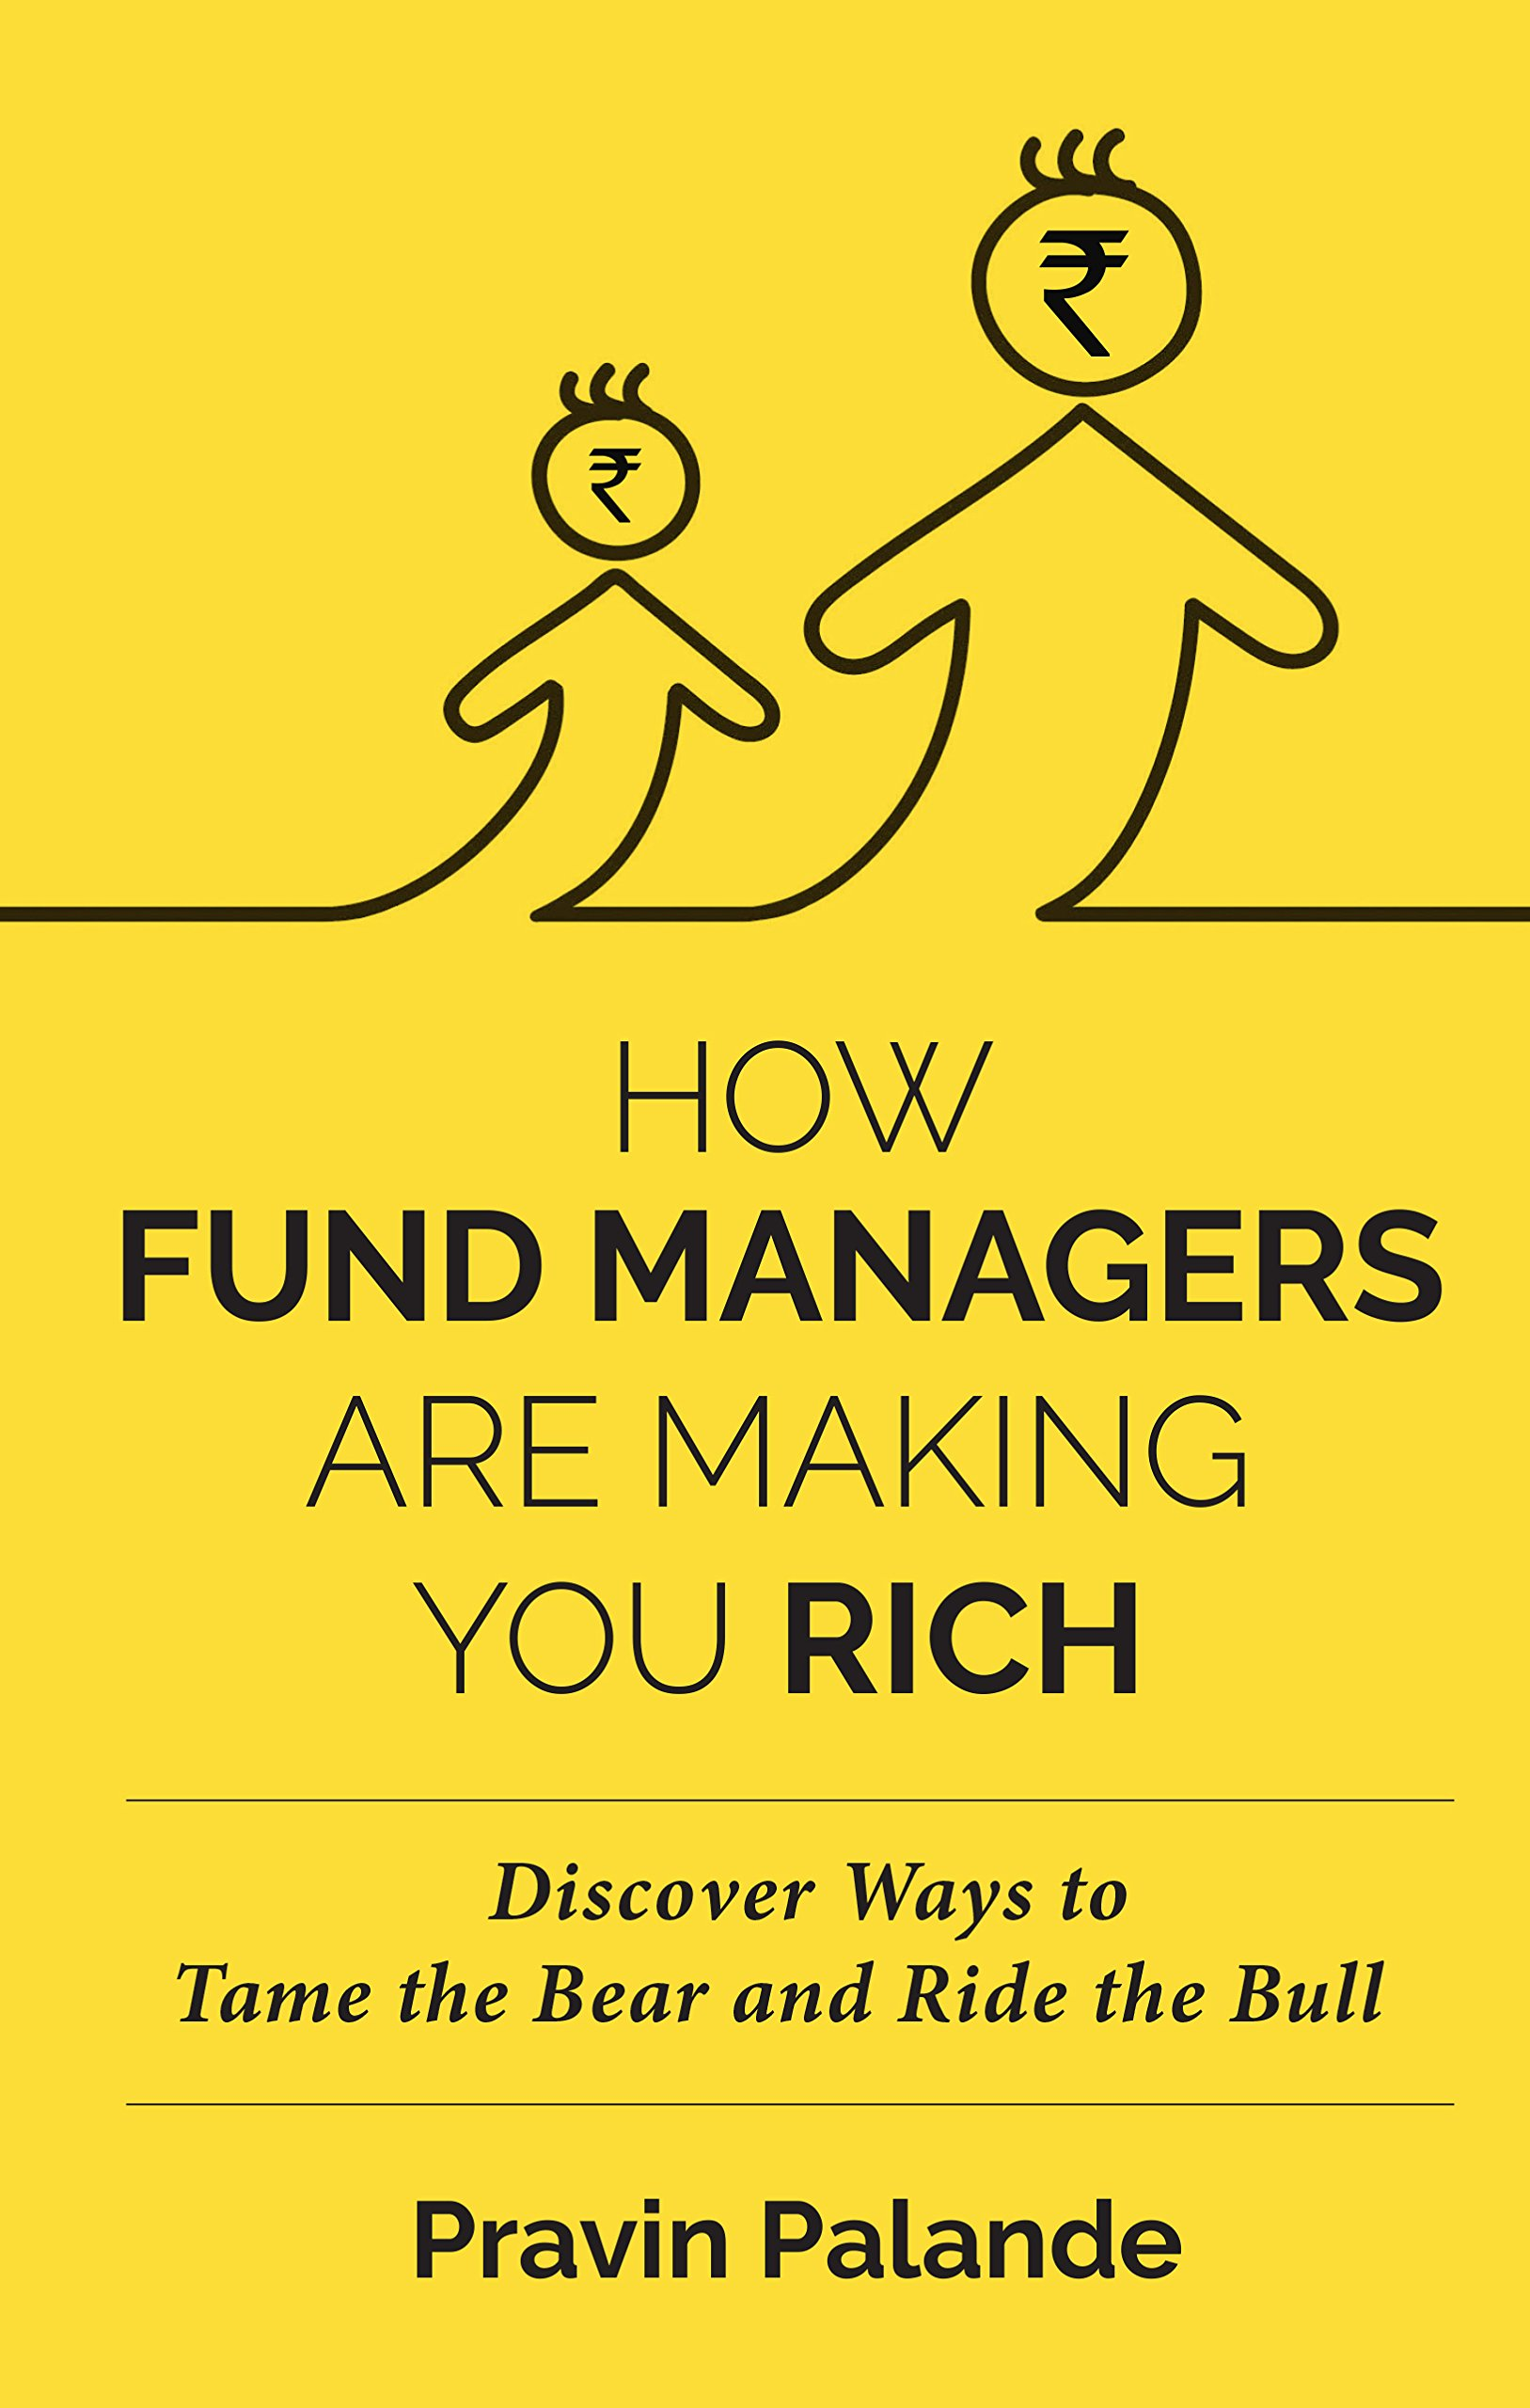 How Fund Managers are Making You Rich: Discover Ways to Tame